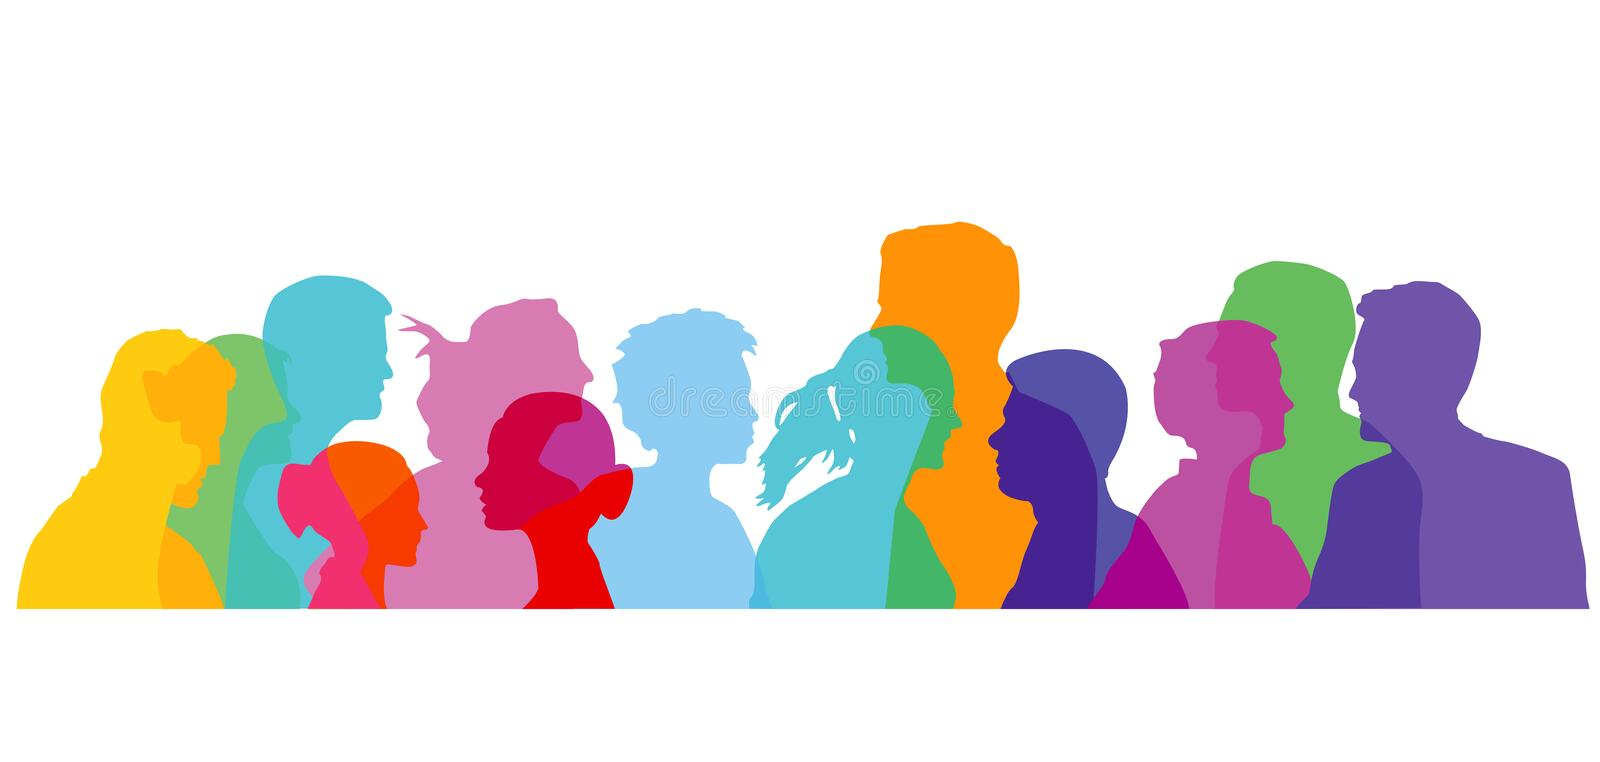 Colorful group of people royalty free illustration